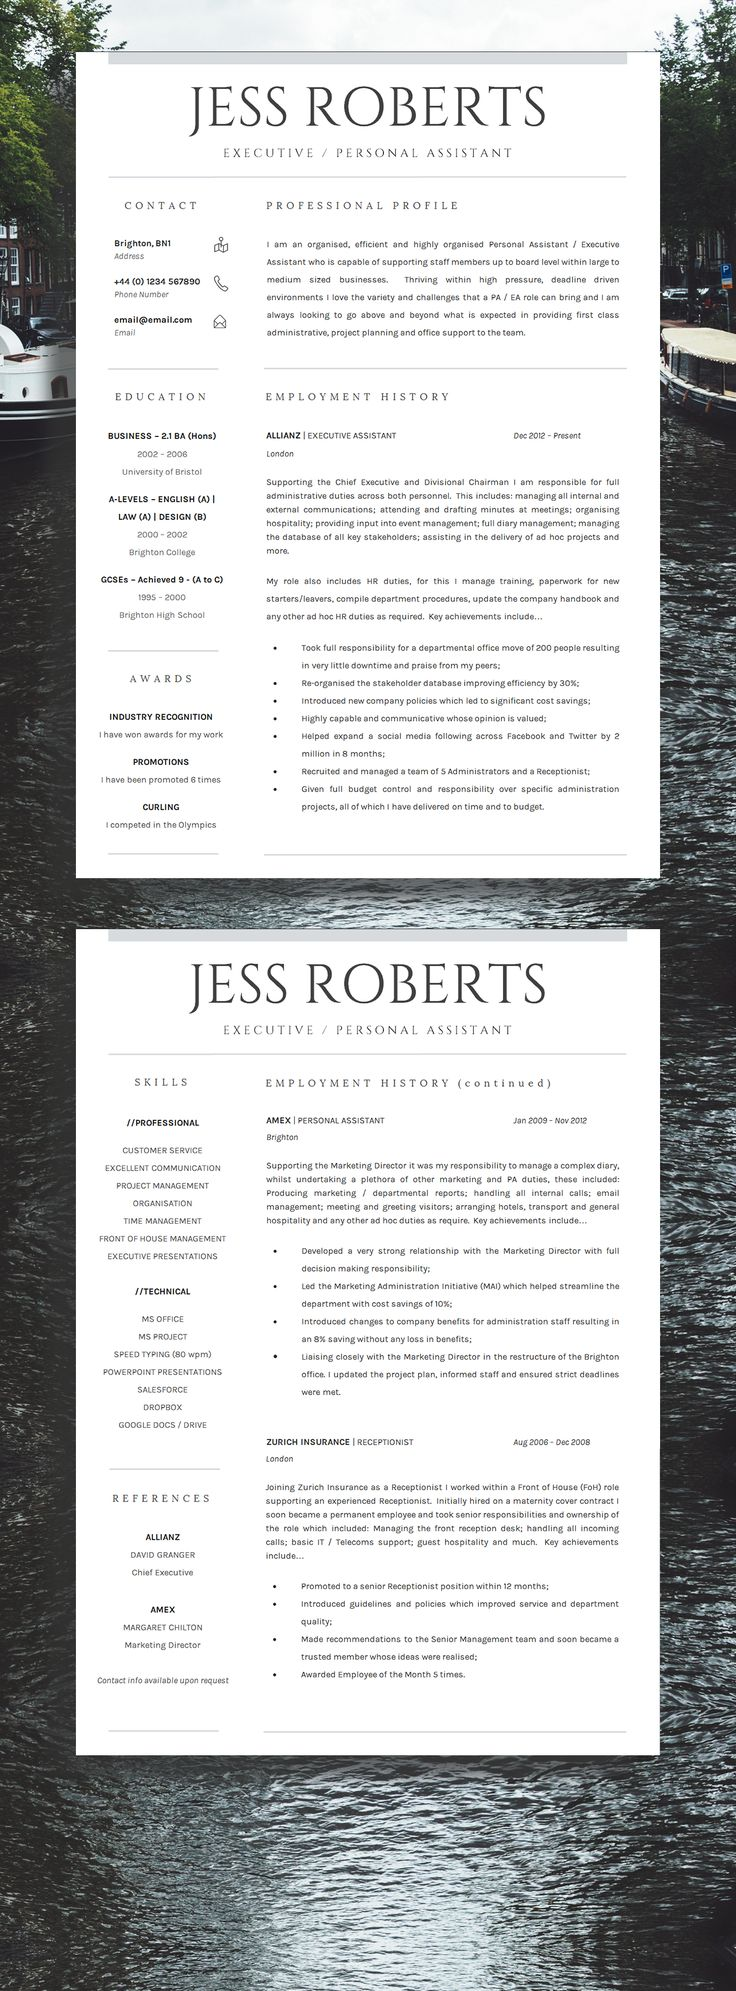 Professional Curriculum Vitae | Professional CV / Resume Template for MS Word…